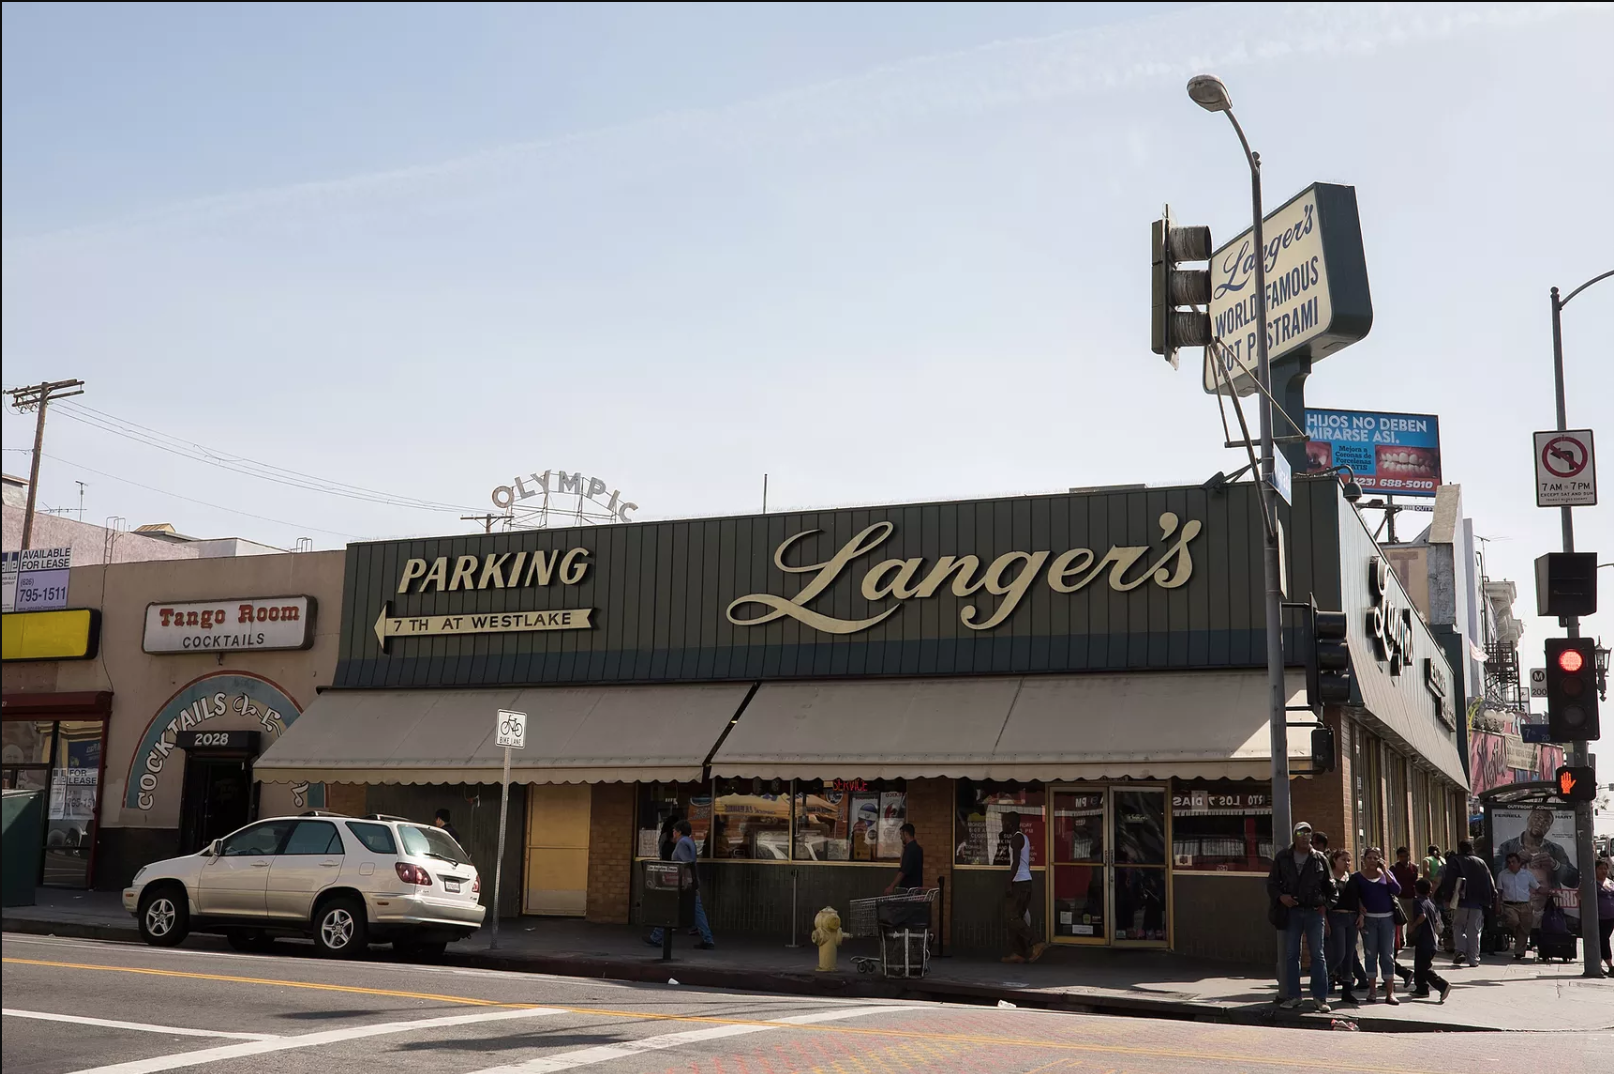 Iconic Langer's property is for sale in Westlake, marketed as development opportunity